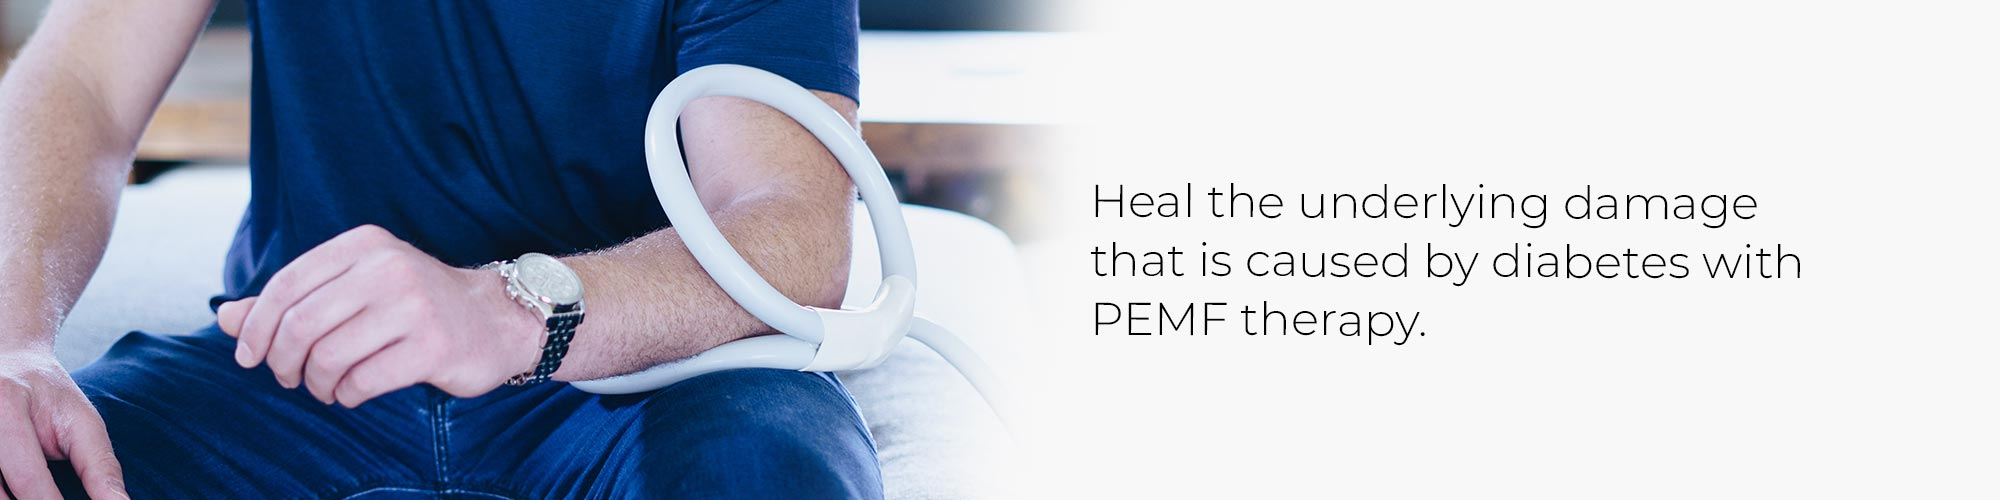 Heal the underlying damage that is caused by diabetes with PEMF therapy.